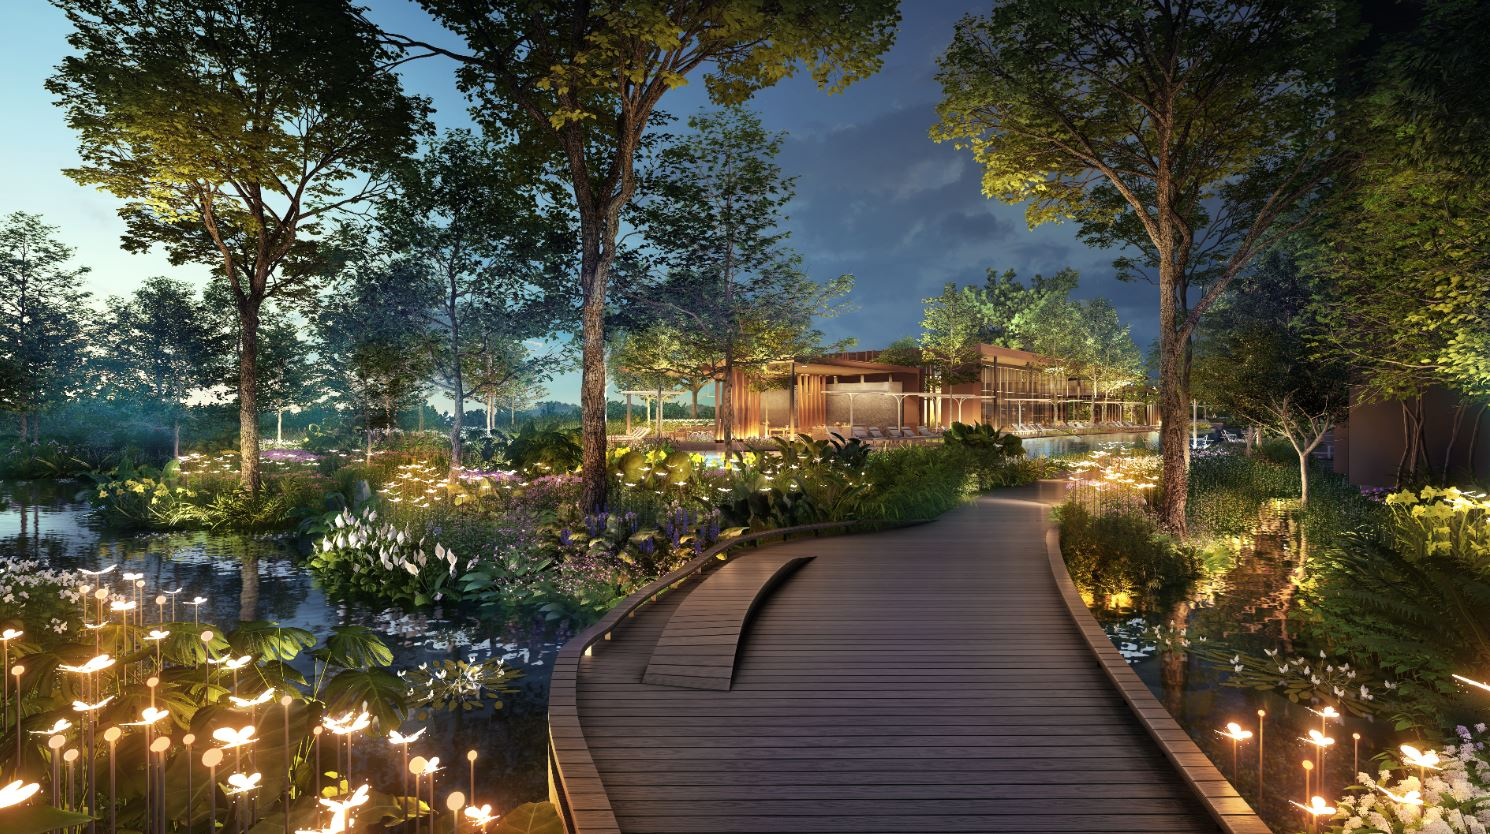 Artist's Impression . Pasir Ris 8 Condo Landscaping and Facilities